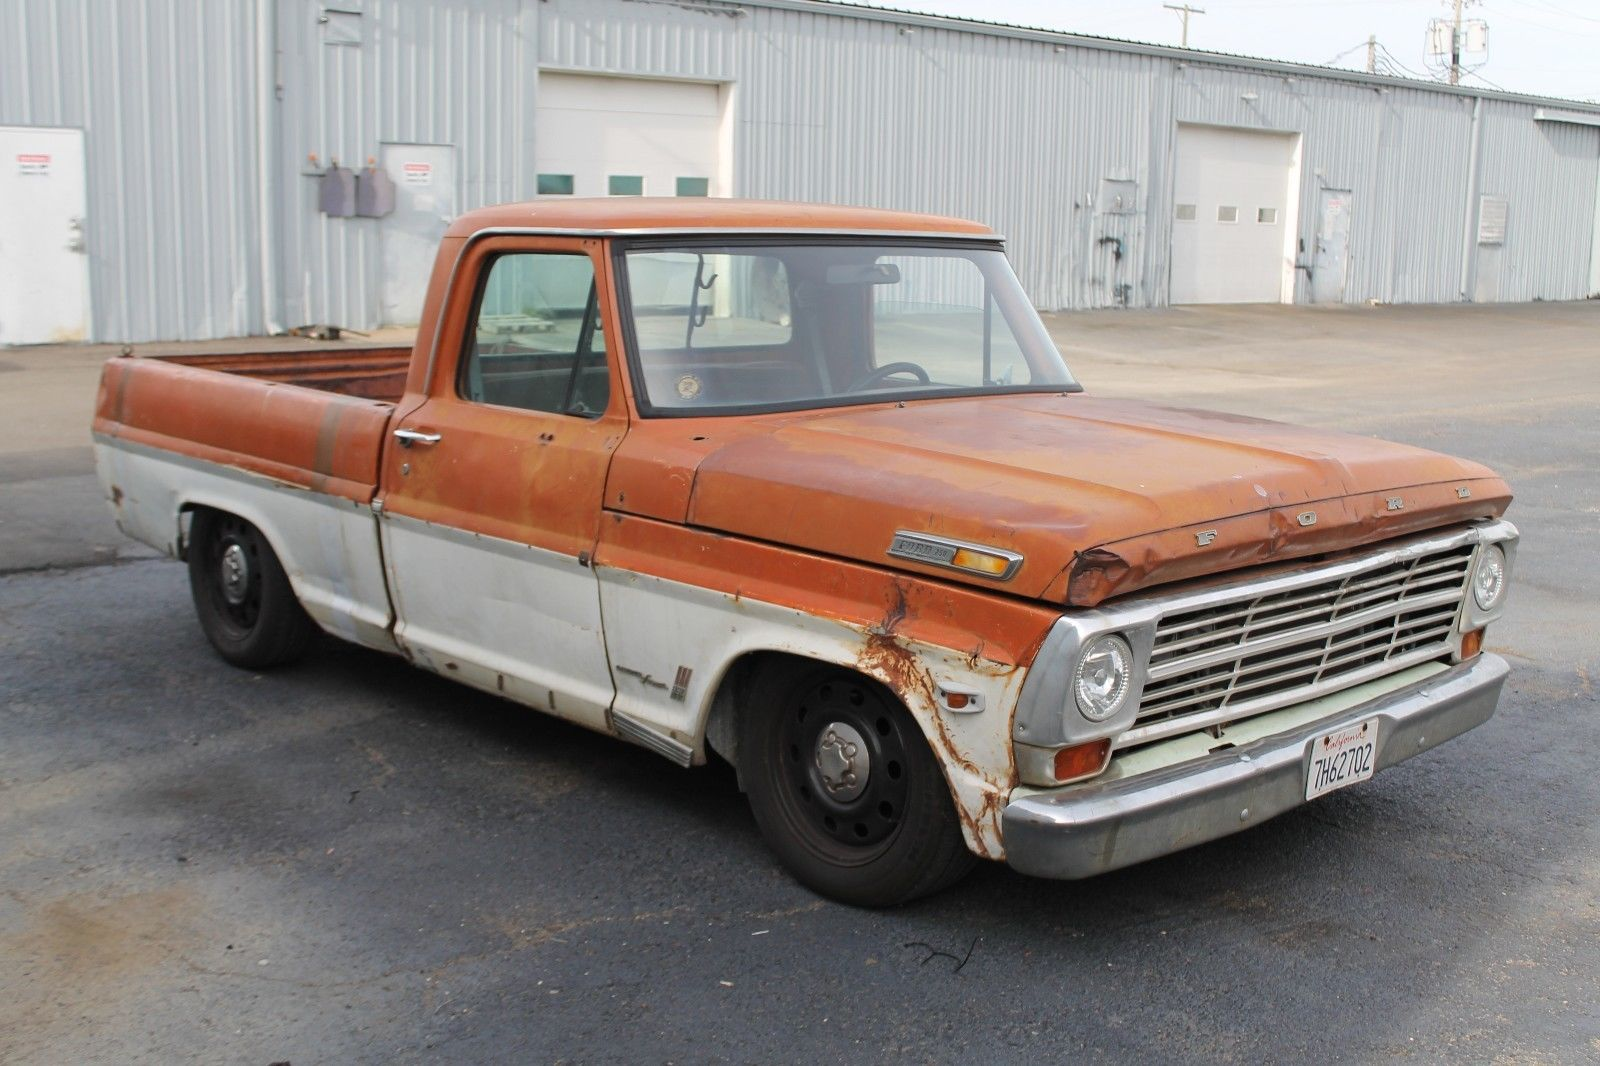 for sale 1969 f 250 on a crown victoria rolling chassis engine crown vic rims this 1969 ford f 250 is for sale on ebay (esd may earn commisions when a product is purchased from this link) in evansville, indiana with no reserve